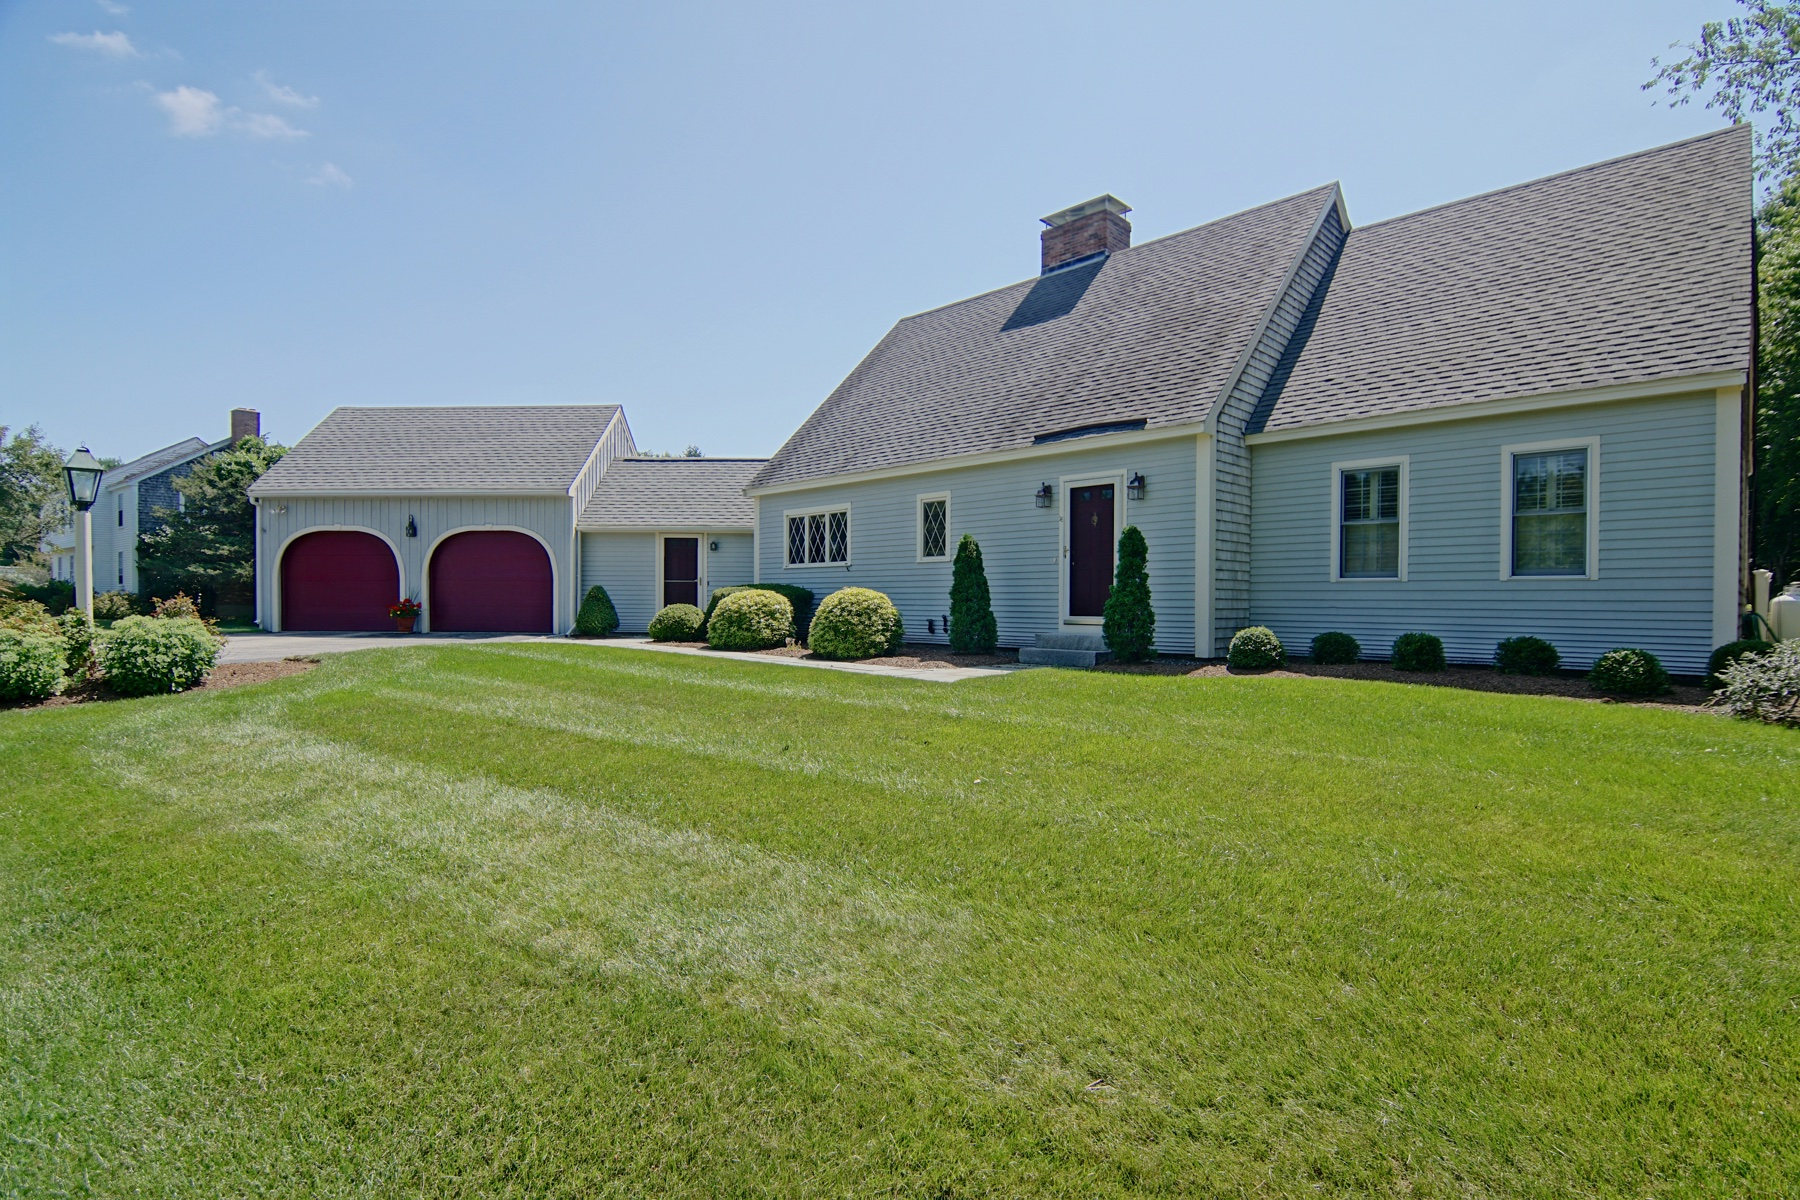 Single Family Homes для того Продажа на Classic Cape Cod Home Blends The Warmth Of Yesterday With The Style Of Today 16 Patriots Way, Rye, Нью-Гэмпшир 03870 Соединенные Штаты